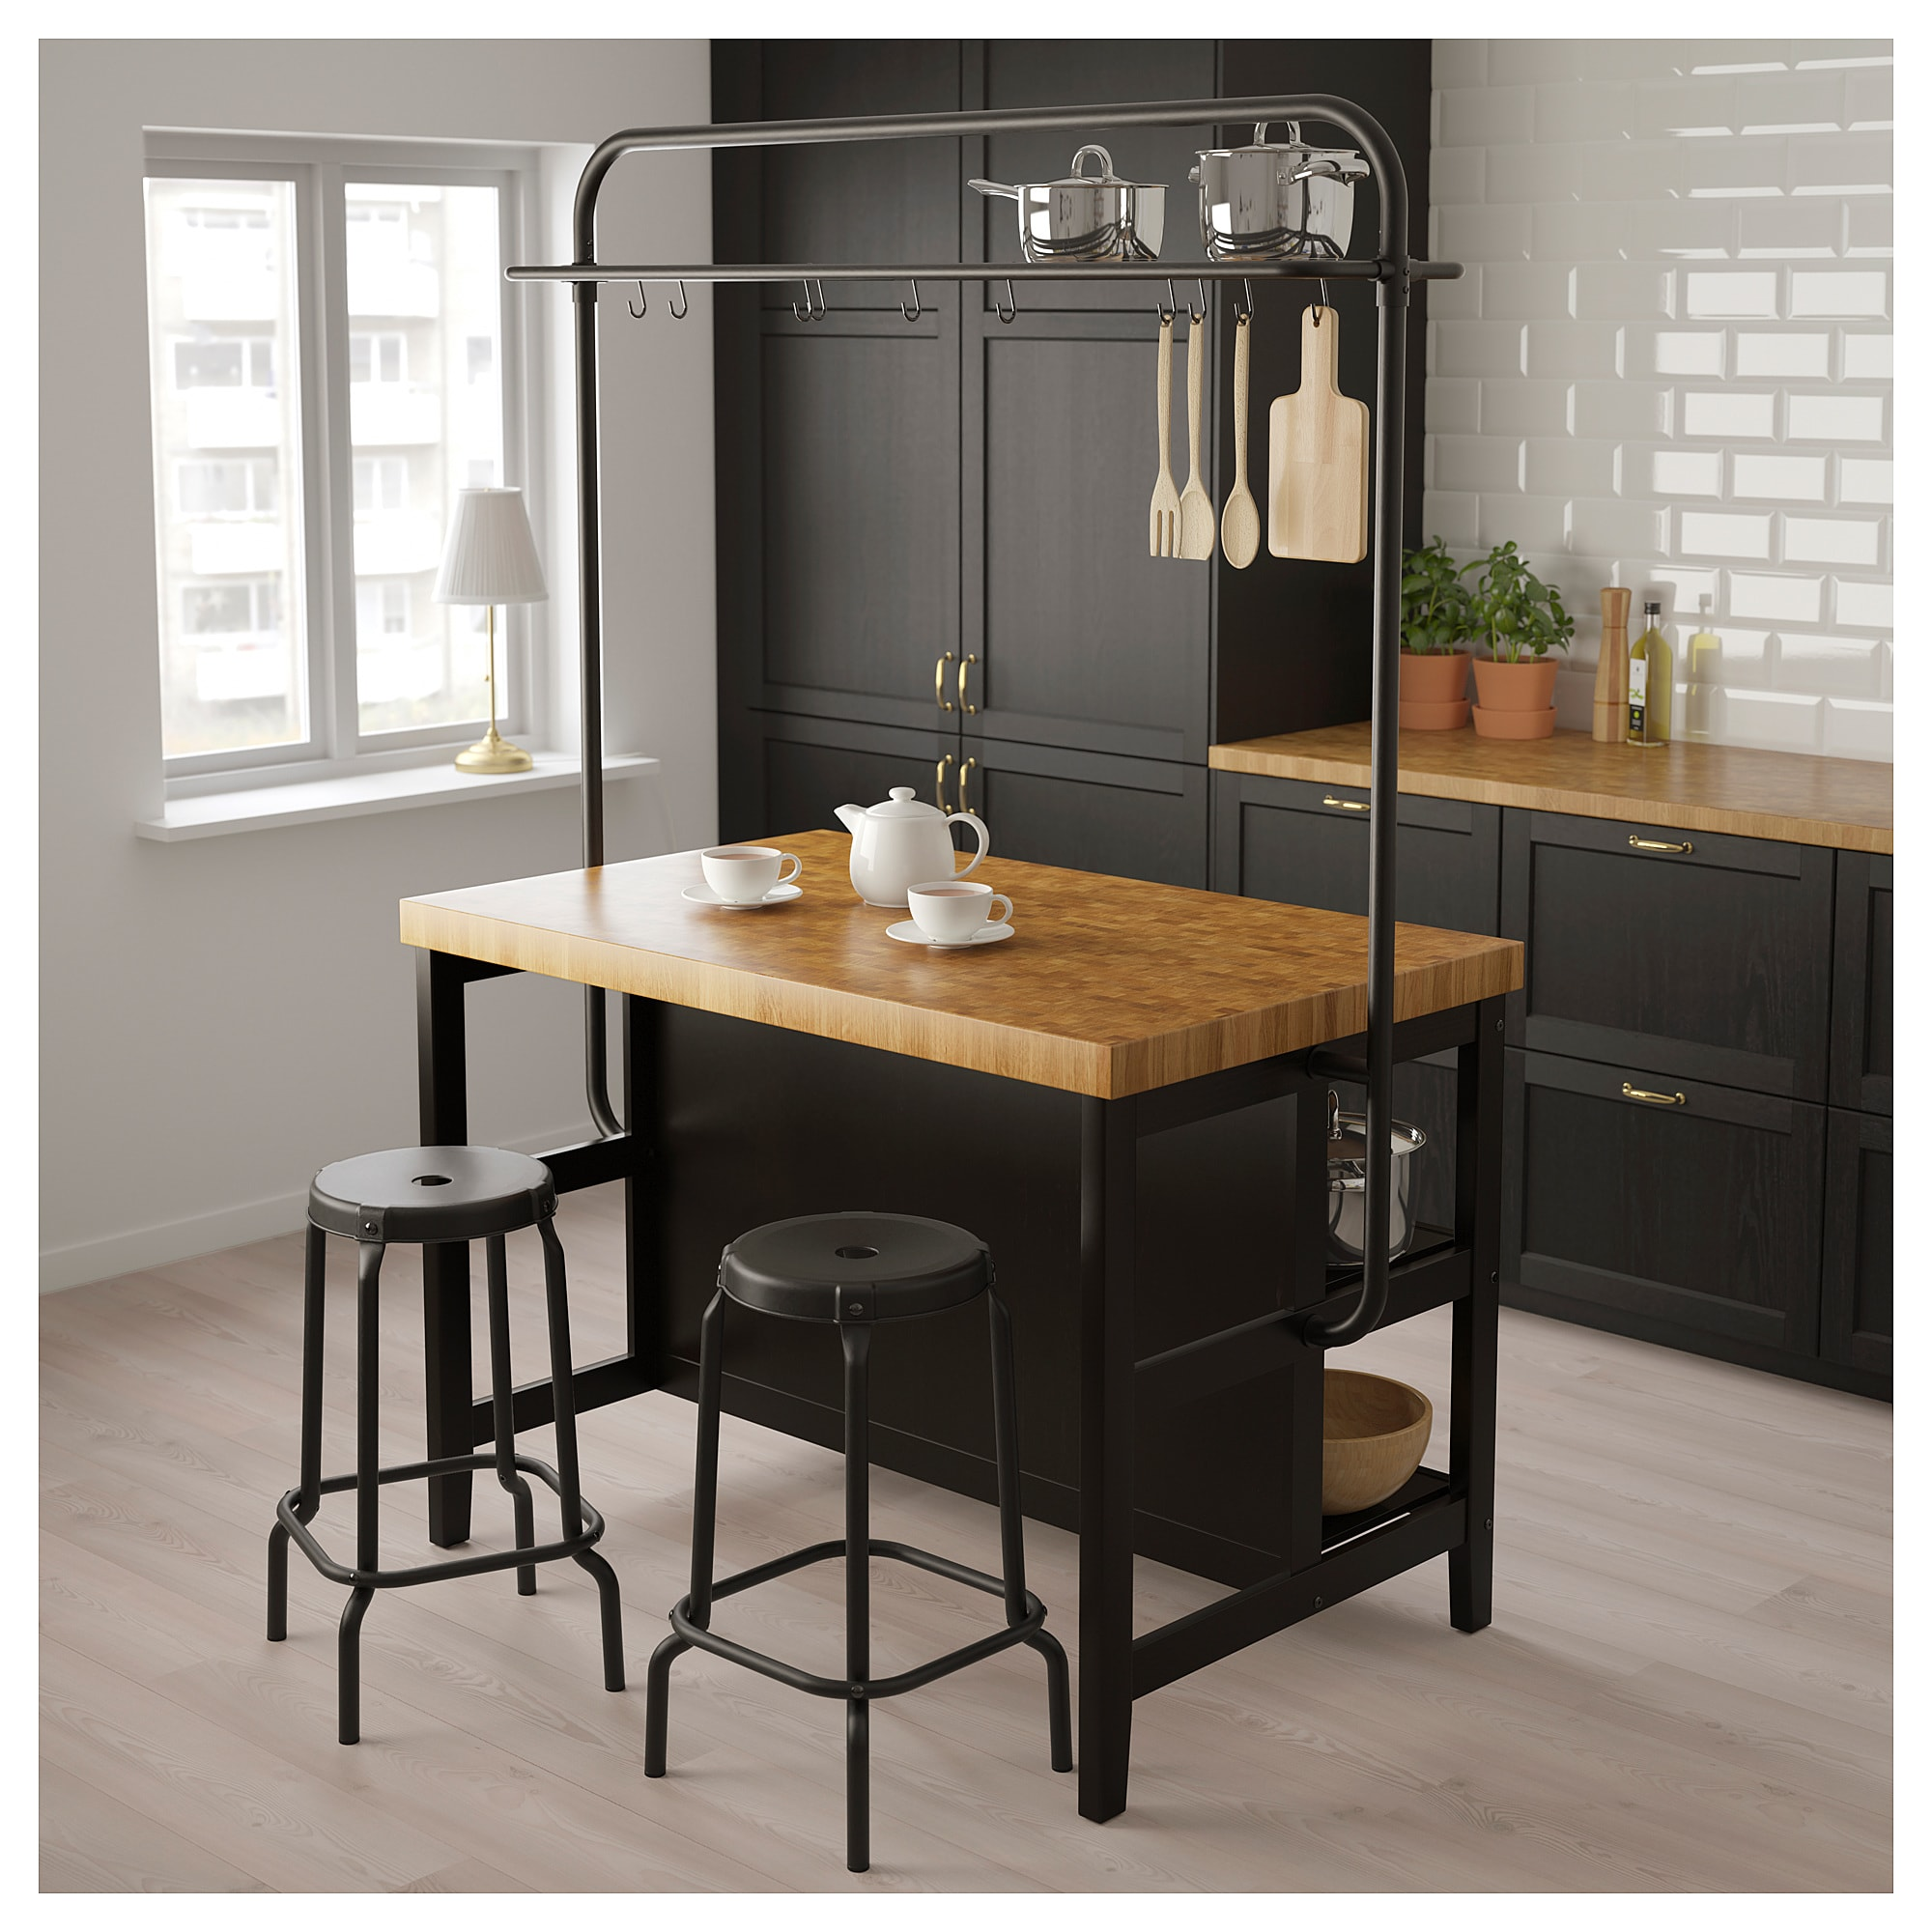 Ikea Vadholma Kitchen Island With Rack Black Oak In